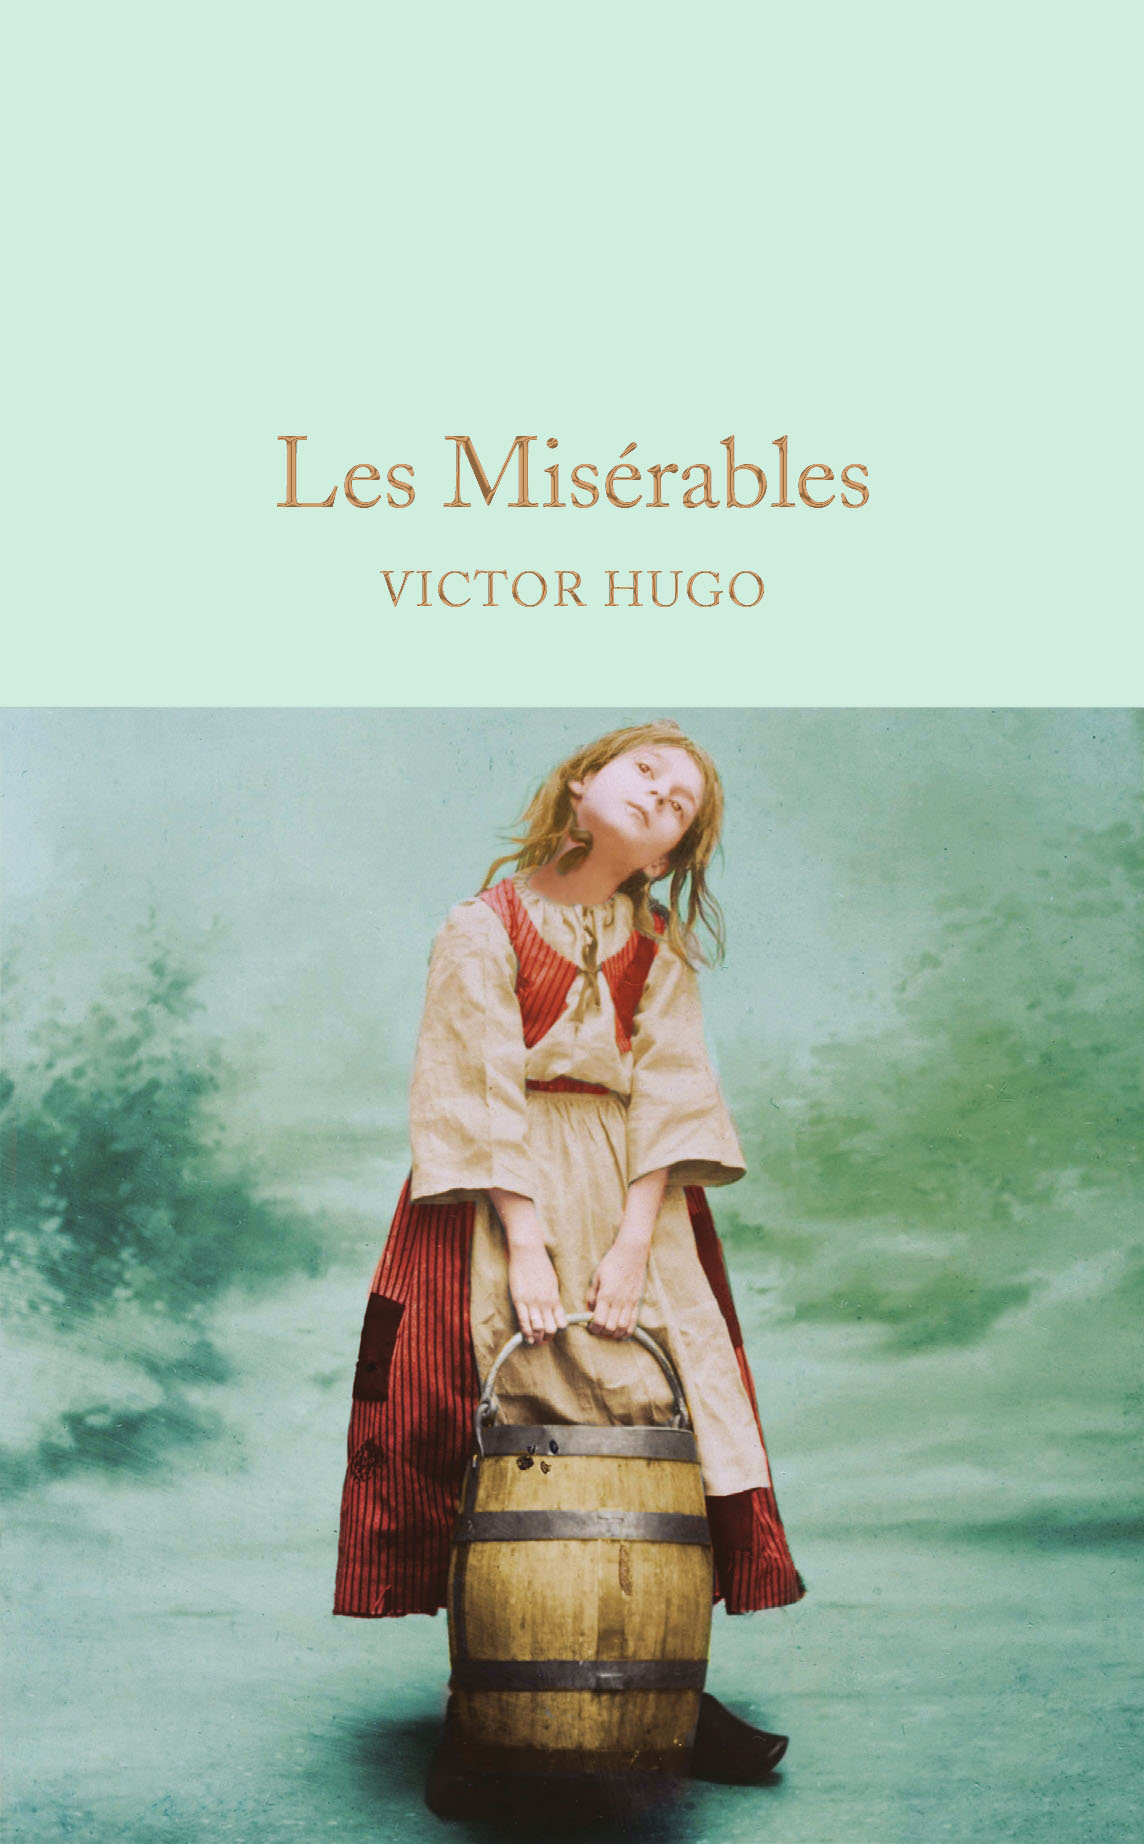 victor hugos examination of jean valjeans thoughts in les miserables Vivtor hugo's les miserables essay 633 words | 3 pages les miserables, a captivating novel by victor hugo, tells the story of multiple people's journey to overcome society's judgment of them hugo uses les miserables to convey the message that people are capable of change hugo develops his theme through the characters eponine, jean.